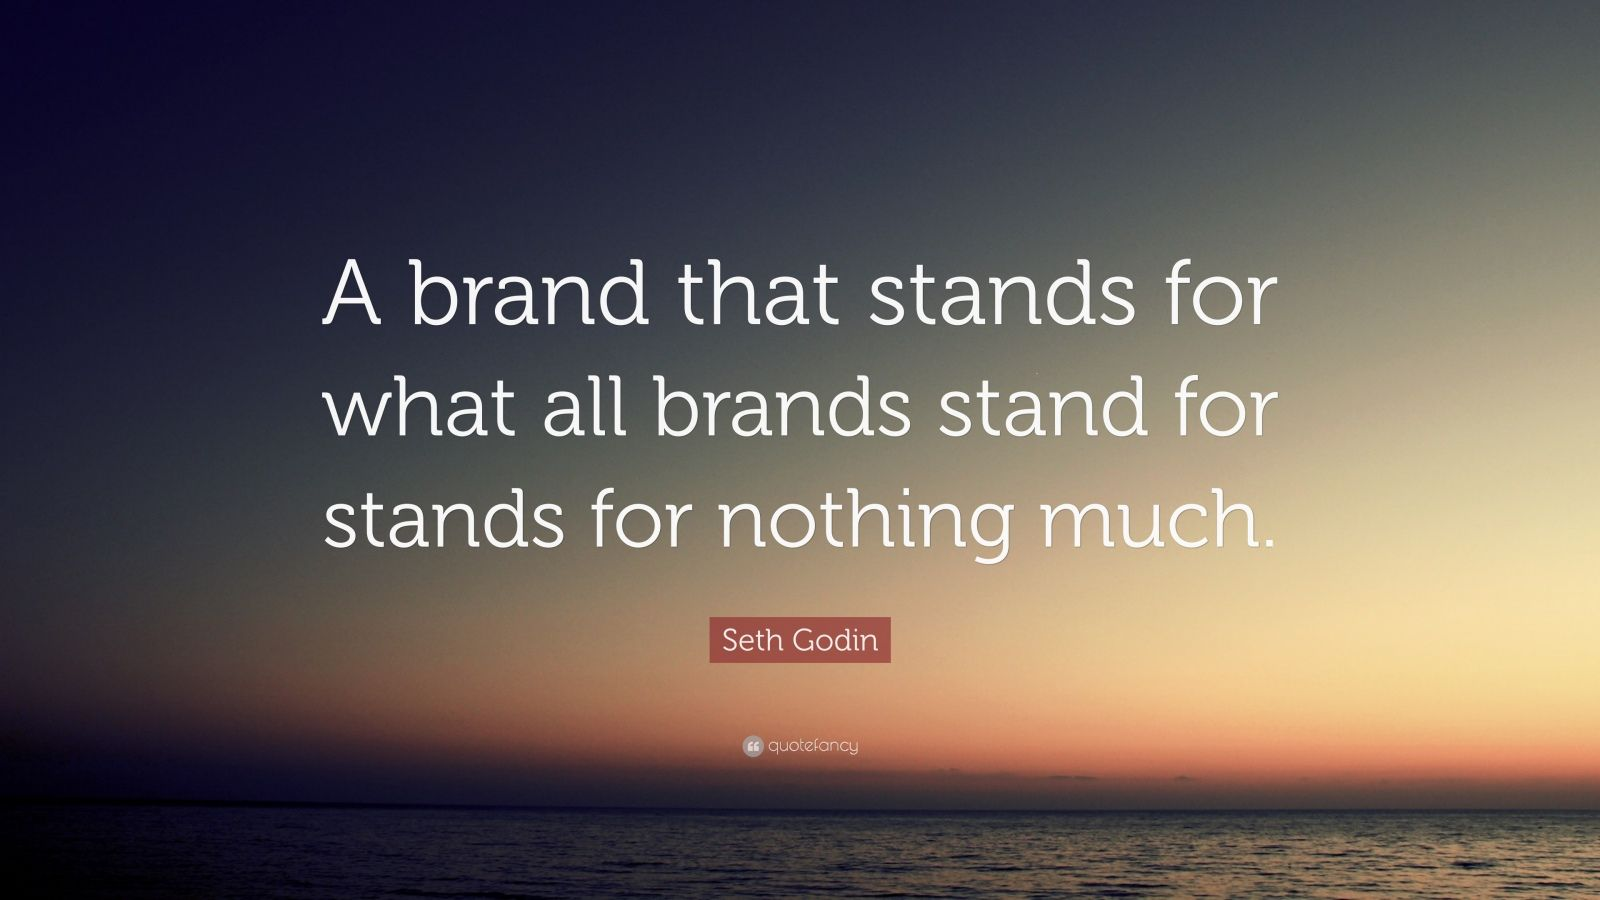 """Seth Godin Quote: """"A brand that stands for what all brands stand for stands for nothing much."""""""